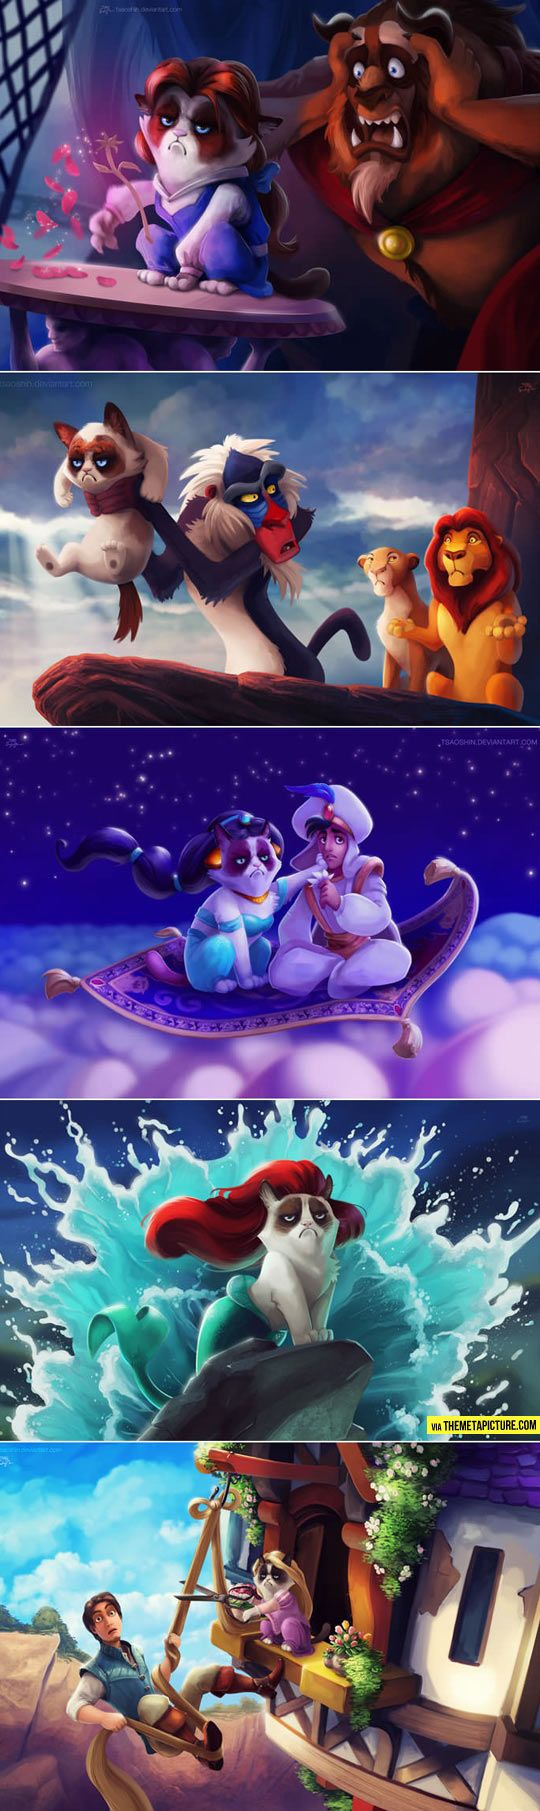 Grumpy Cat in Disney Movies. This is one of the best things I have ever seen! @Aubrey Godden Godden Nickell